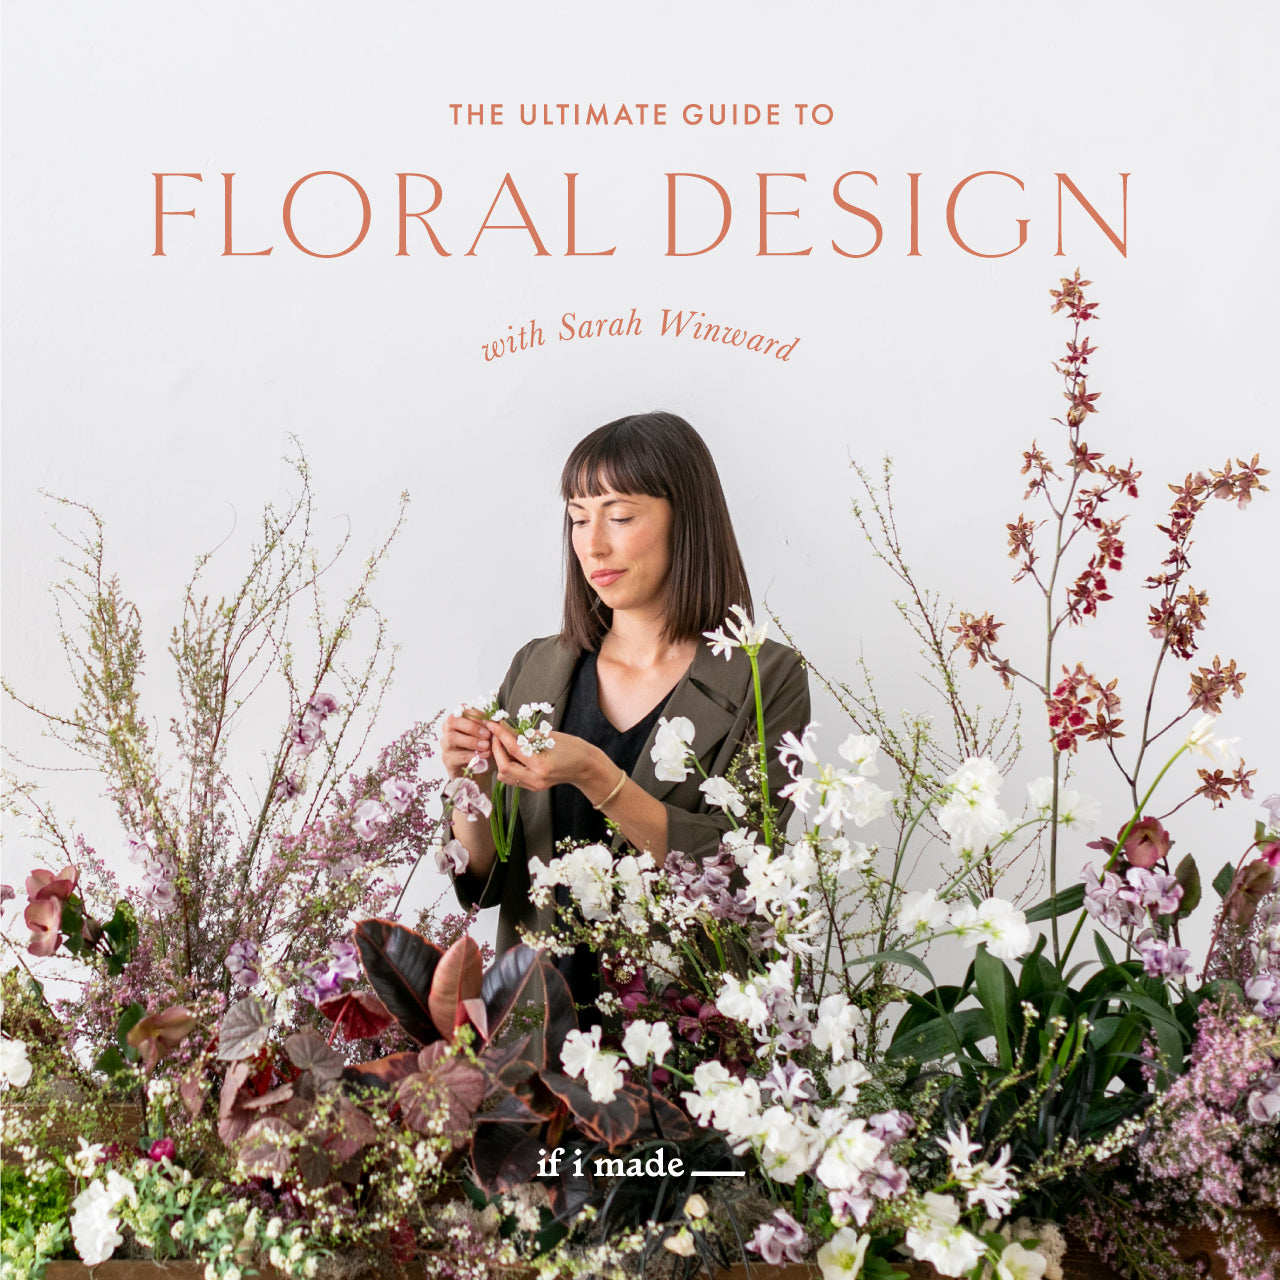 Extended Payment Plan Sale: The Ultimate Guide to Floral Design with Sarah Winward - 18 payments of $99